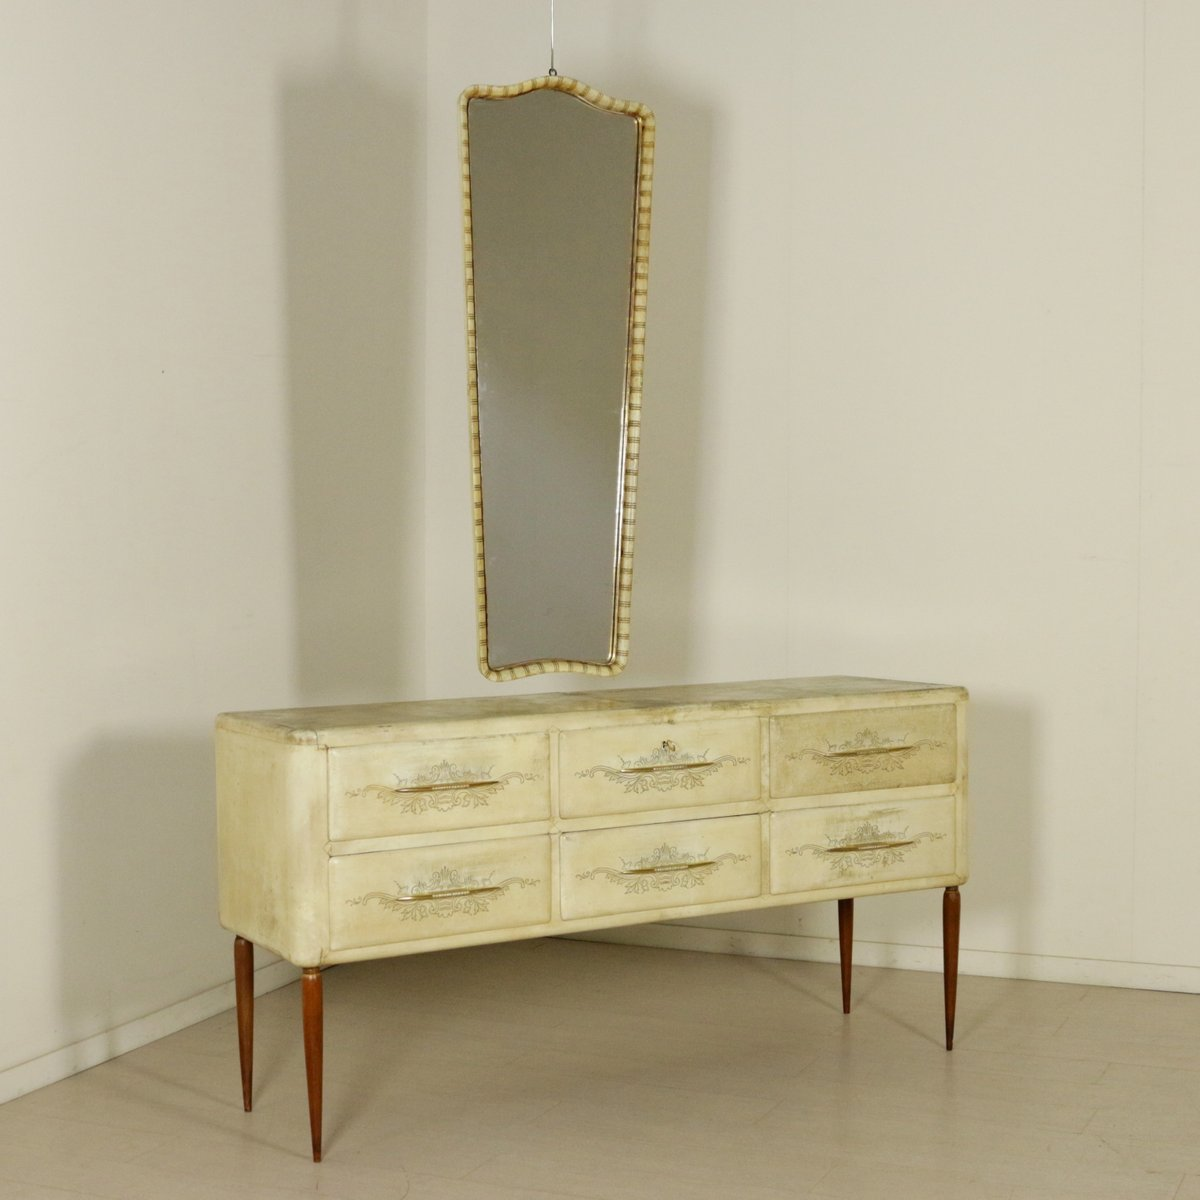 commode vintage en parchemin de bois et laiton avec miroir. Black Bedroom Furniture Sets. Home Design Ideas